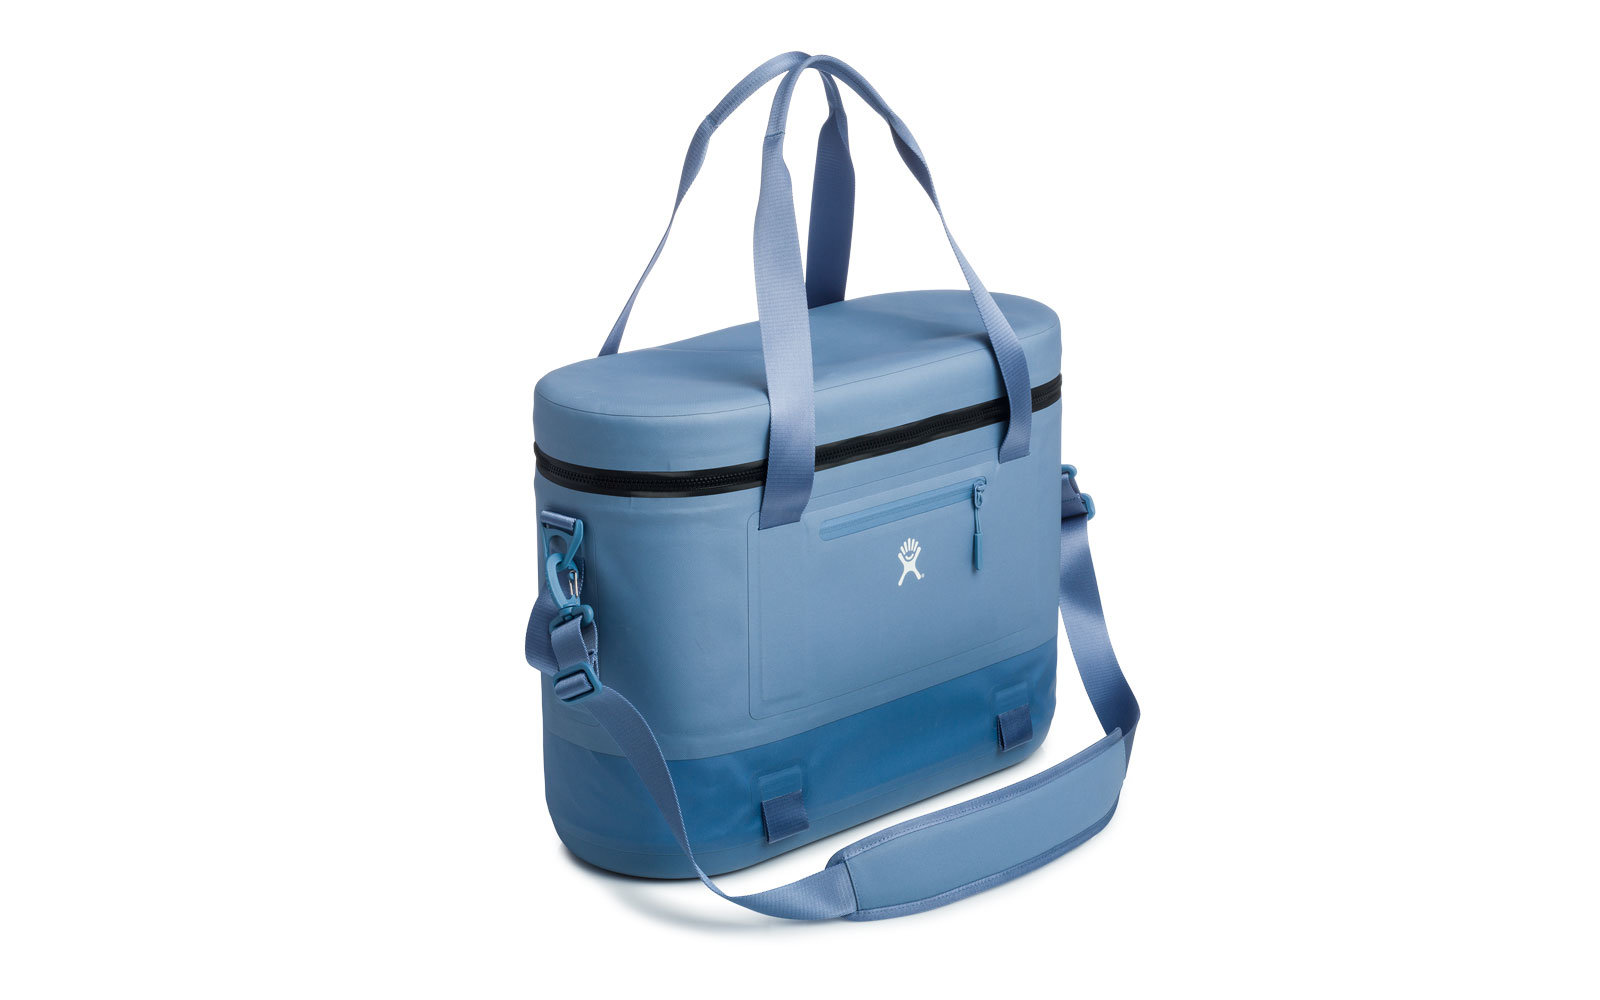 Soft Cooler Bag >> The Best Insulated Cooler Bags for Travel | Travel + Leisure